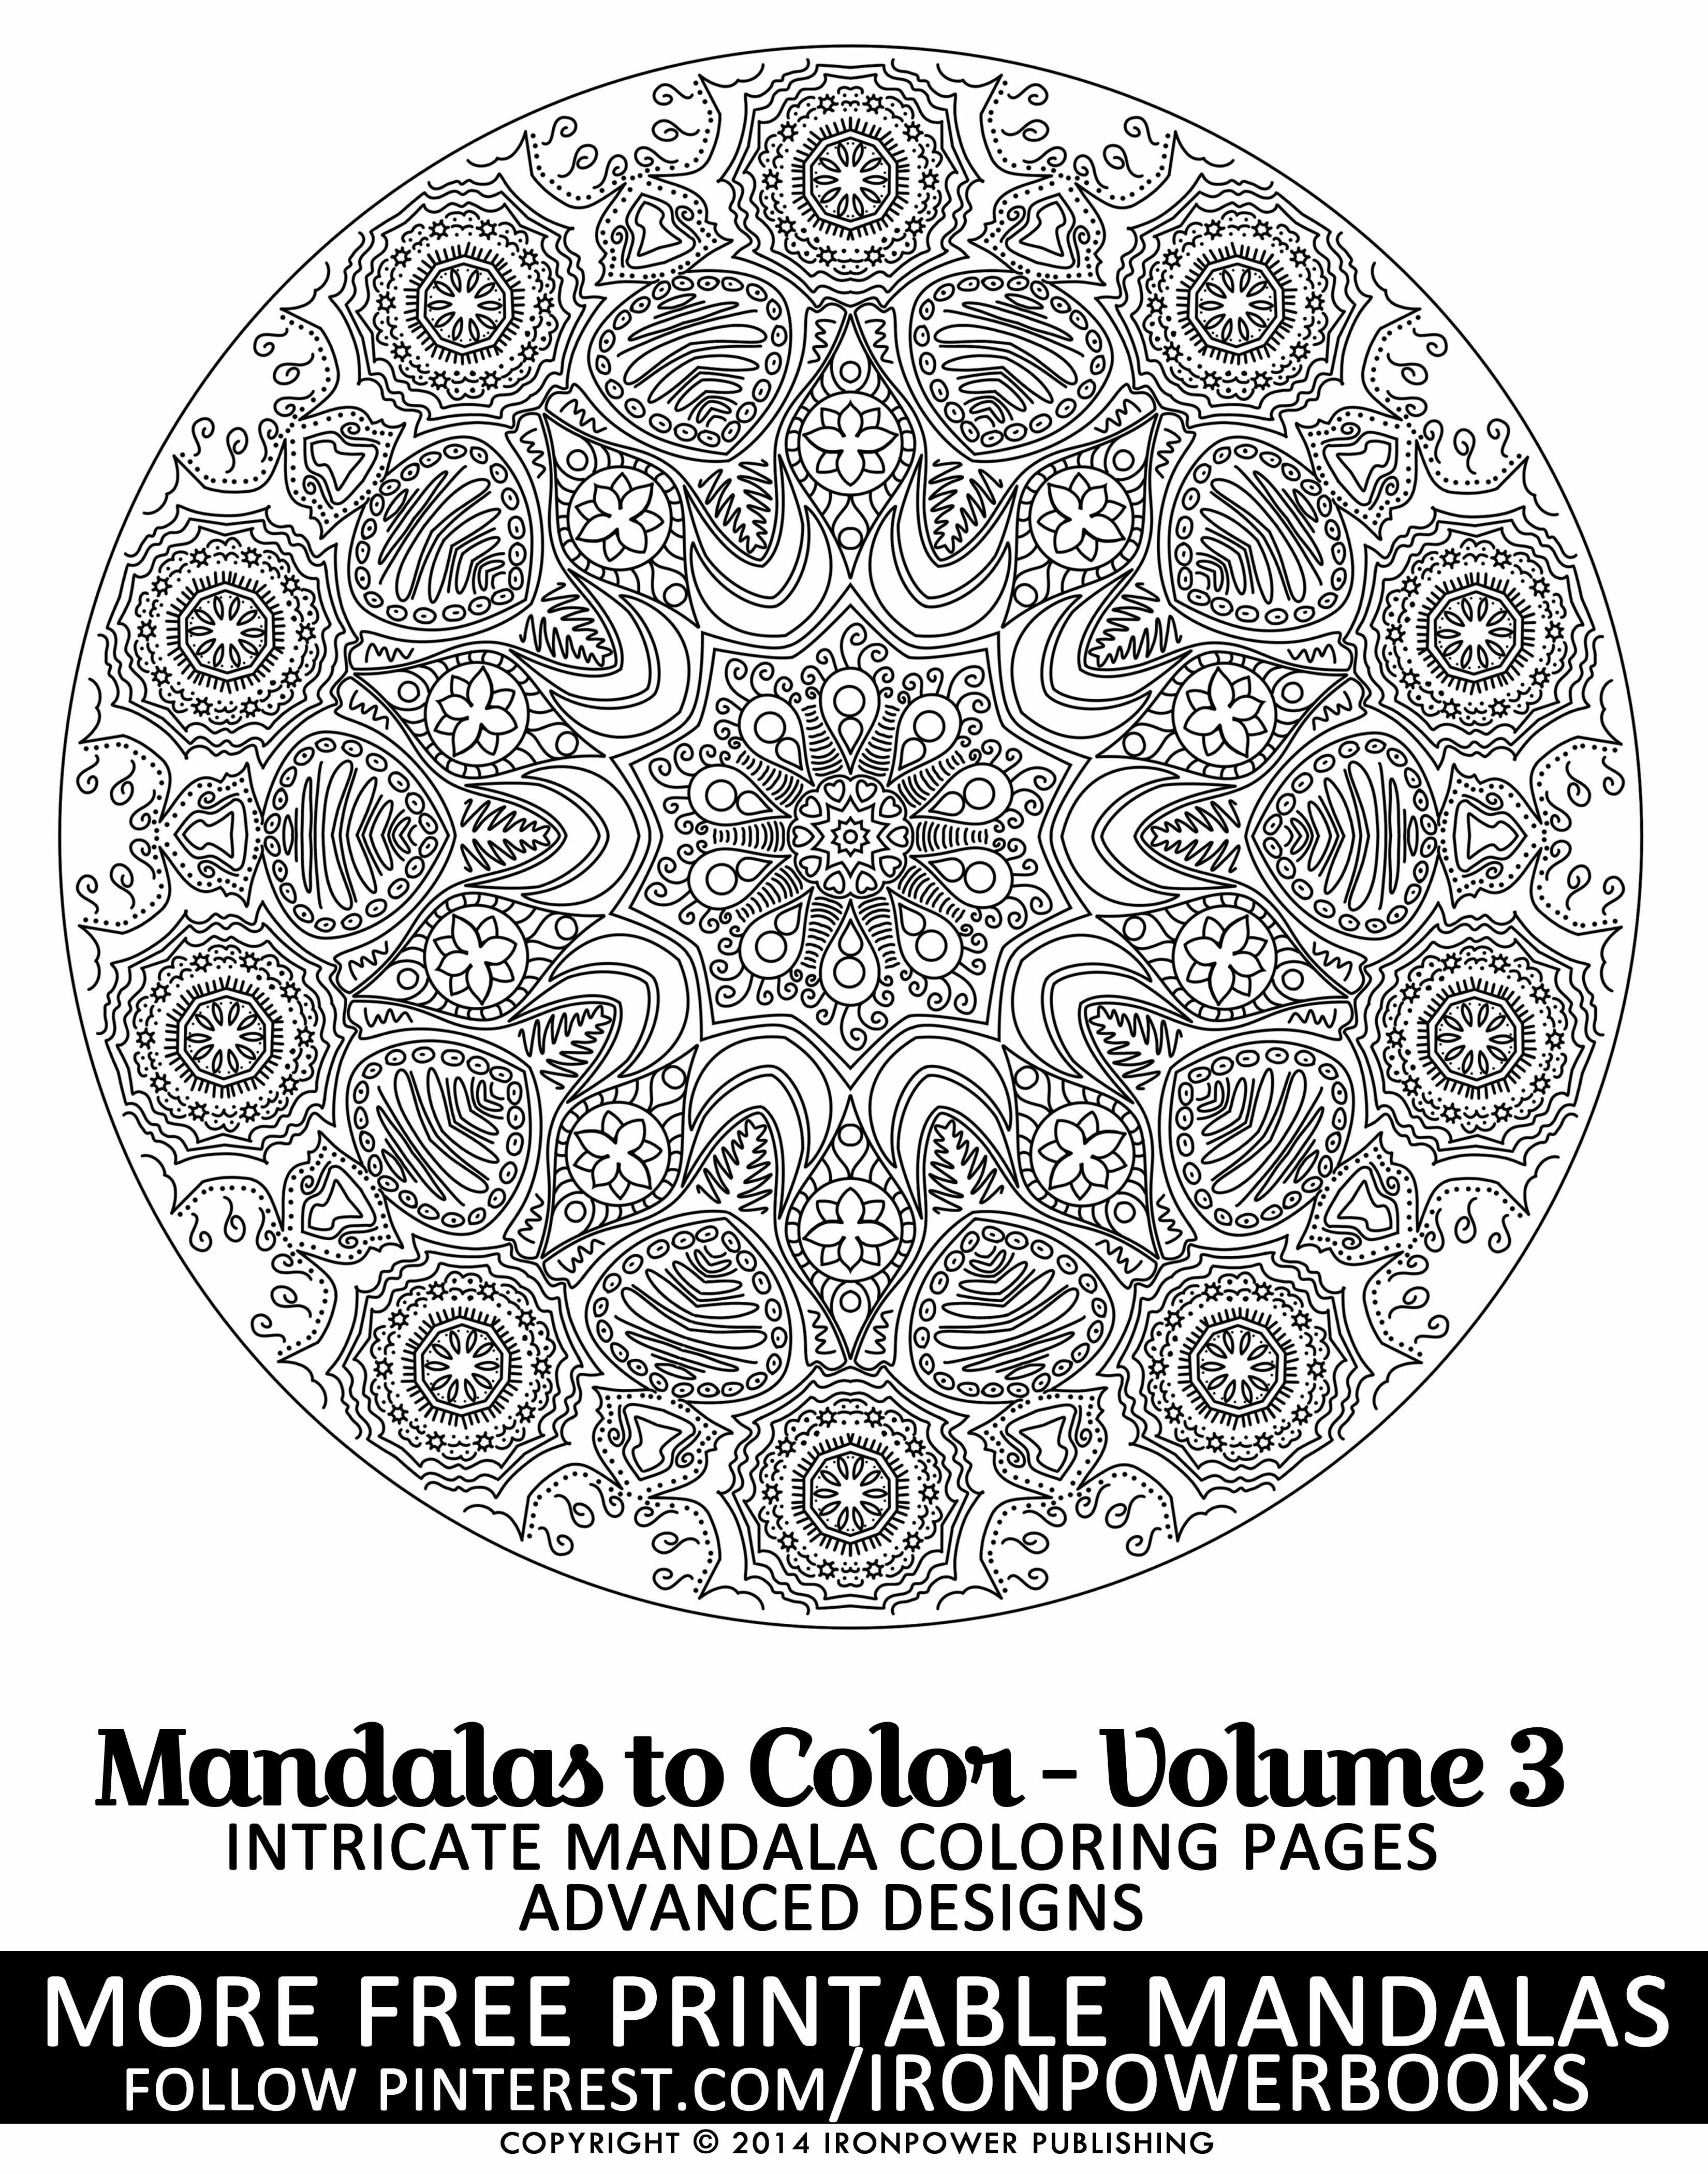 Free Advanced Mandala Designs To Color Art Therapy Free Mandala Coloring Pages From Ironpowerbooks Mandala Coloring Pages Mandala Coloring Coloring Pages